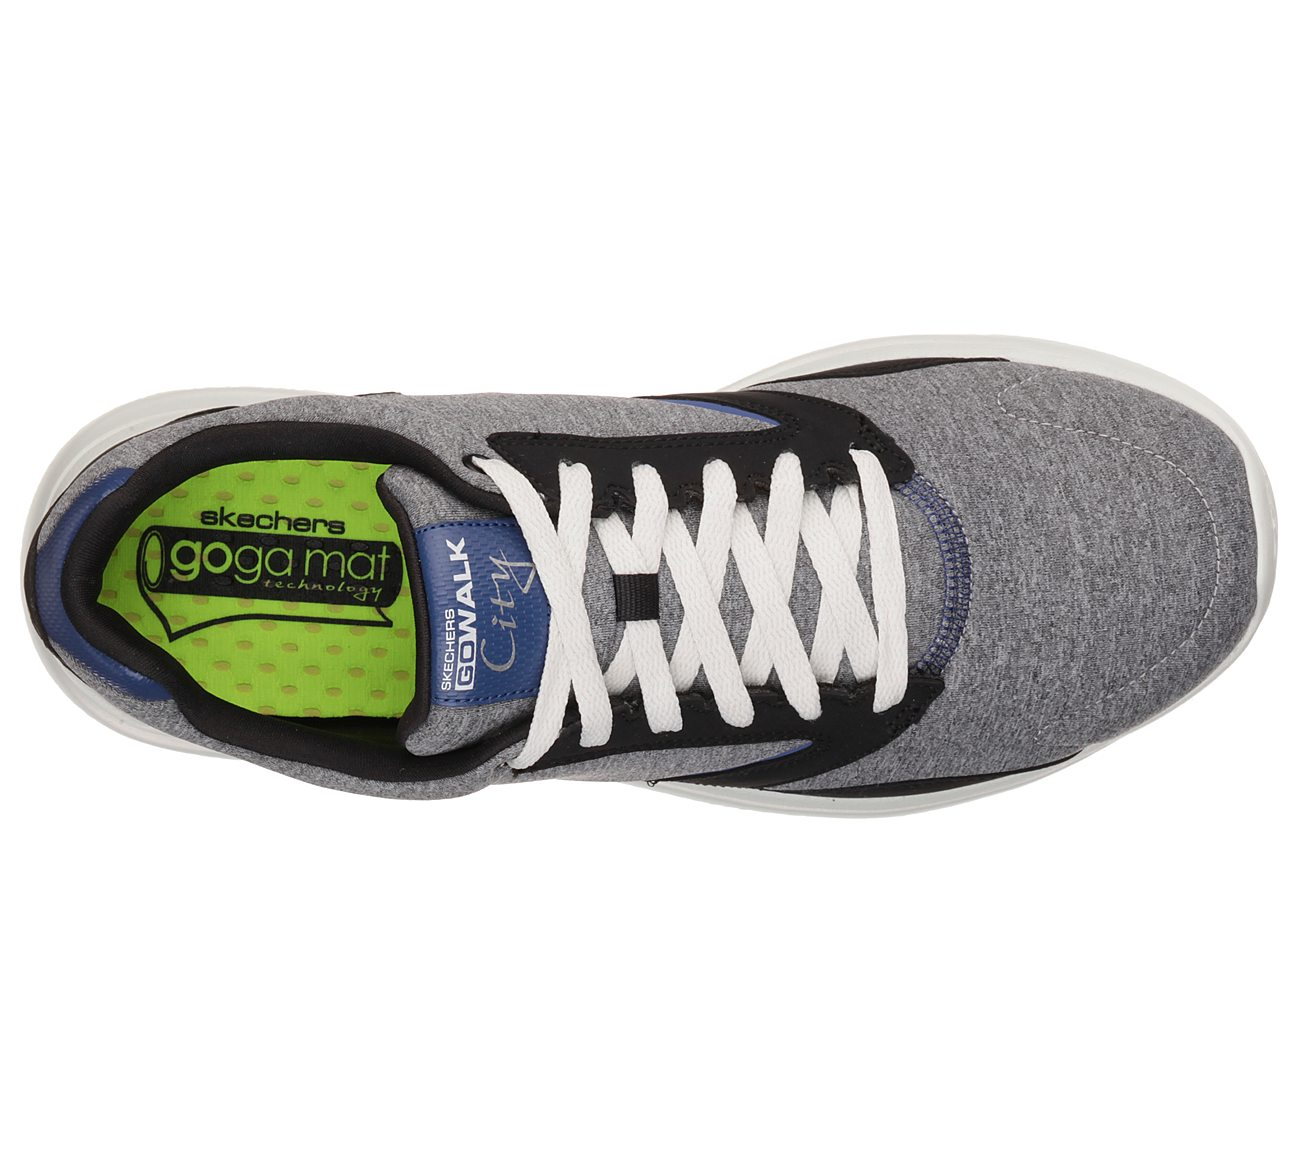 Skechers Skechers GOwalk City Uptown in Blue Skechers